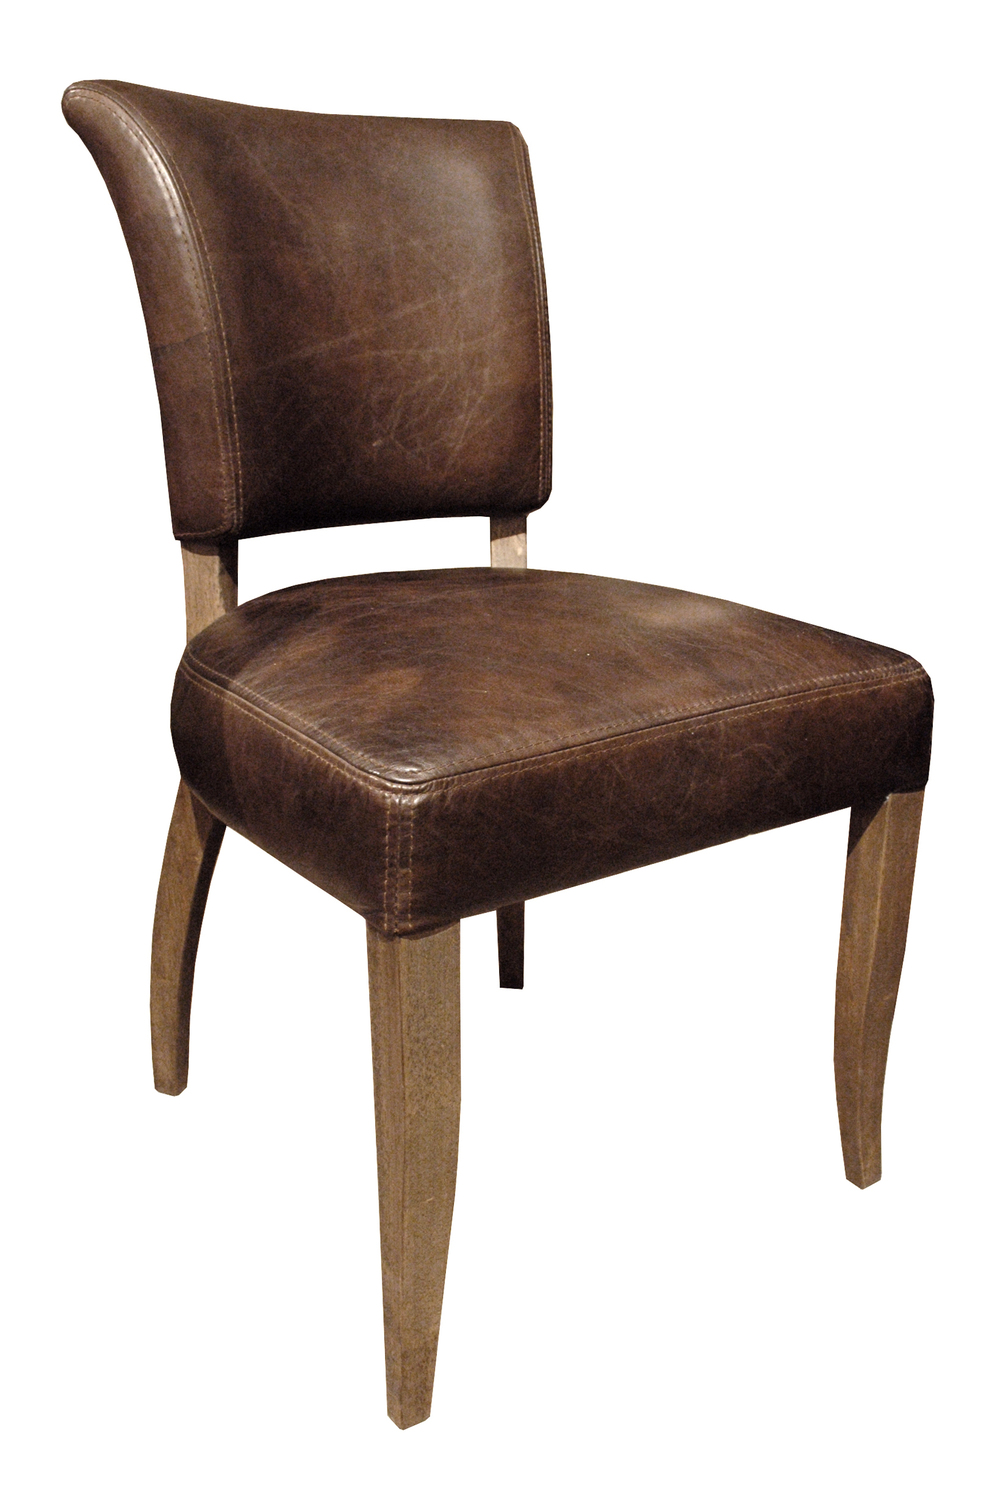 GJ Styles - Mimi Dining Side Chair